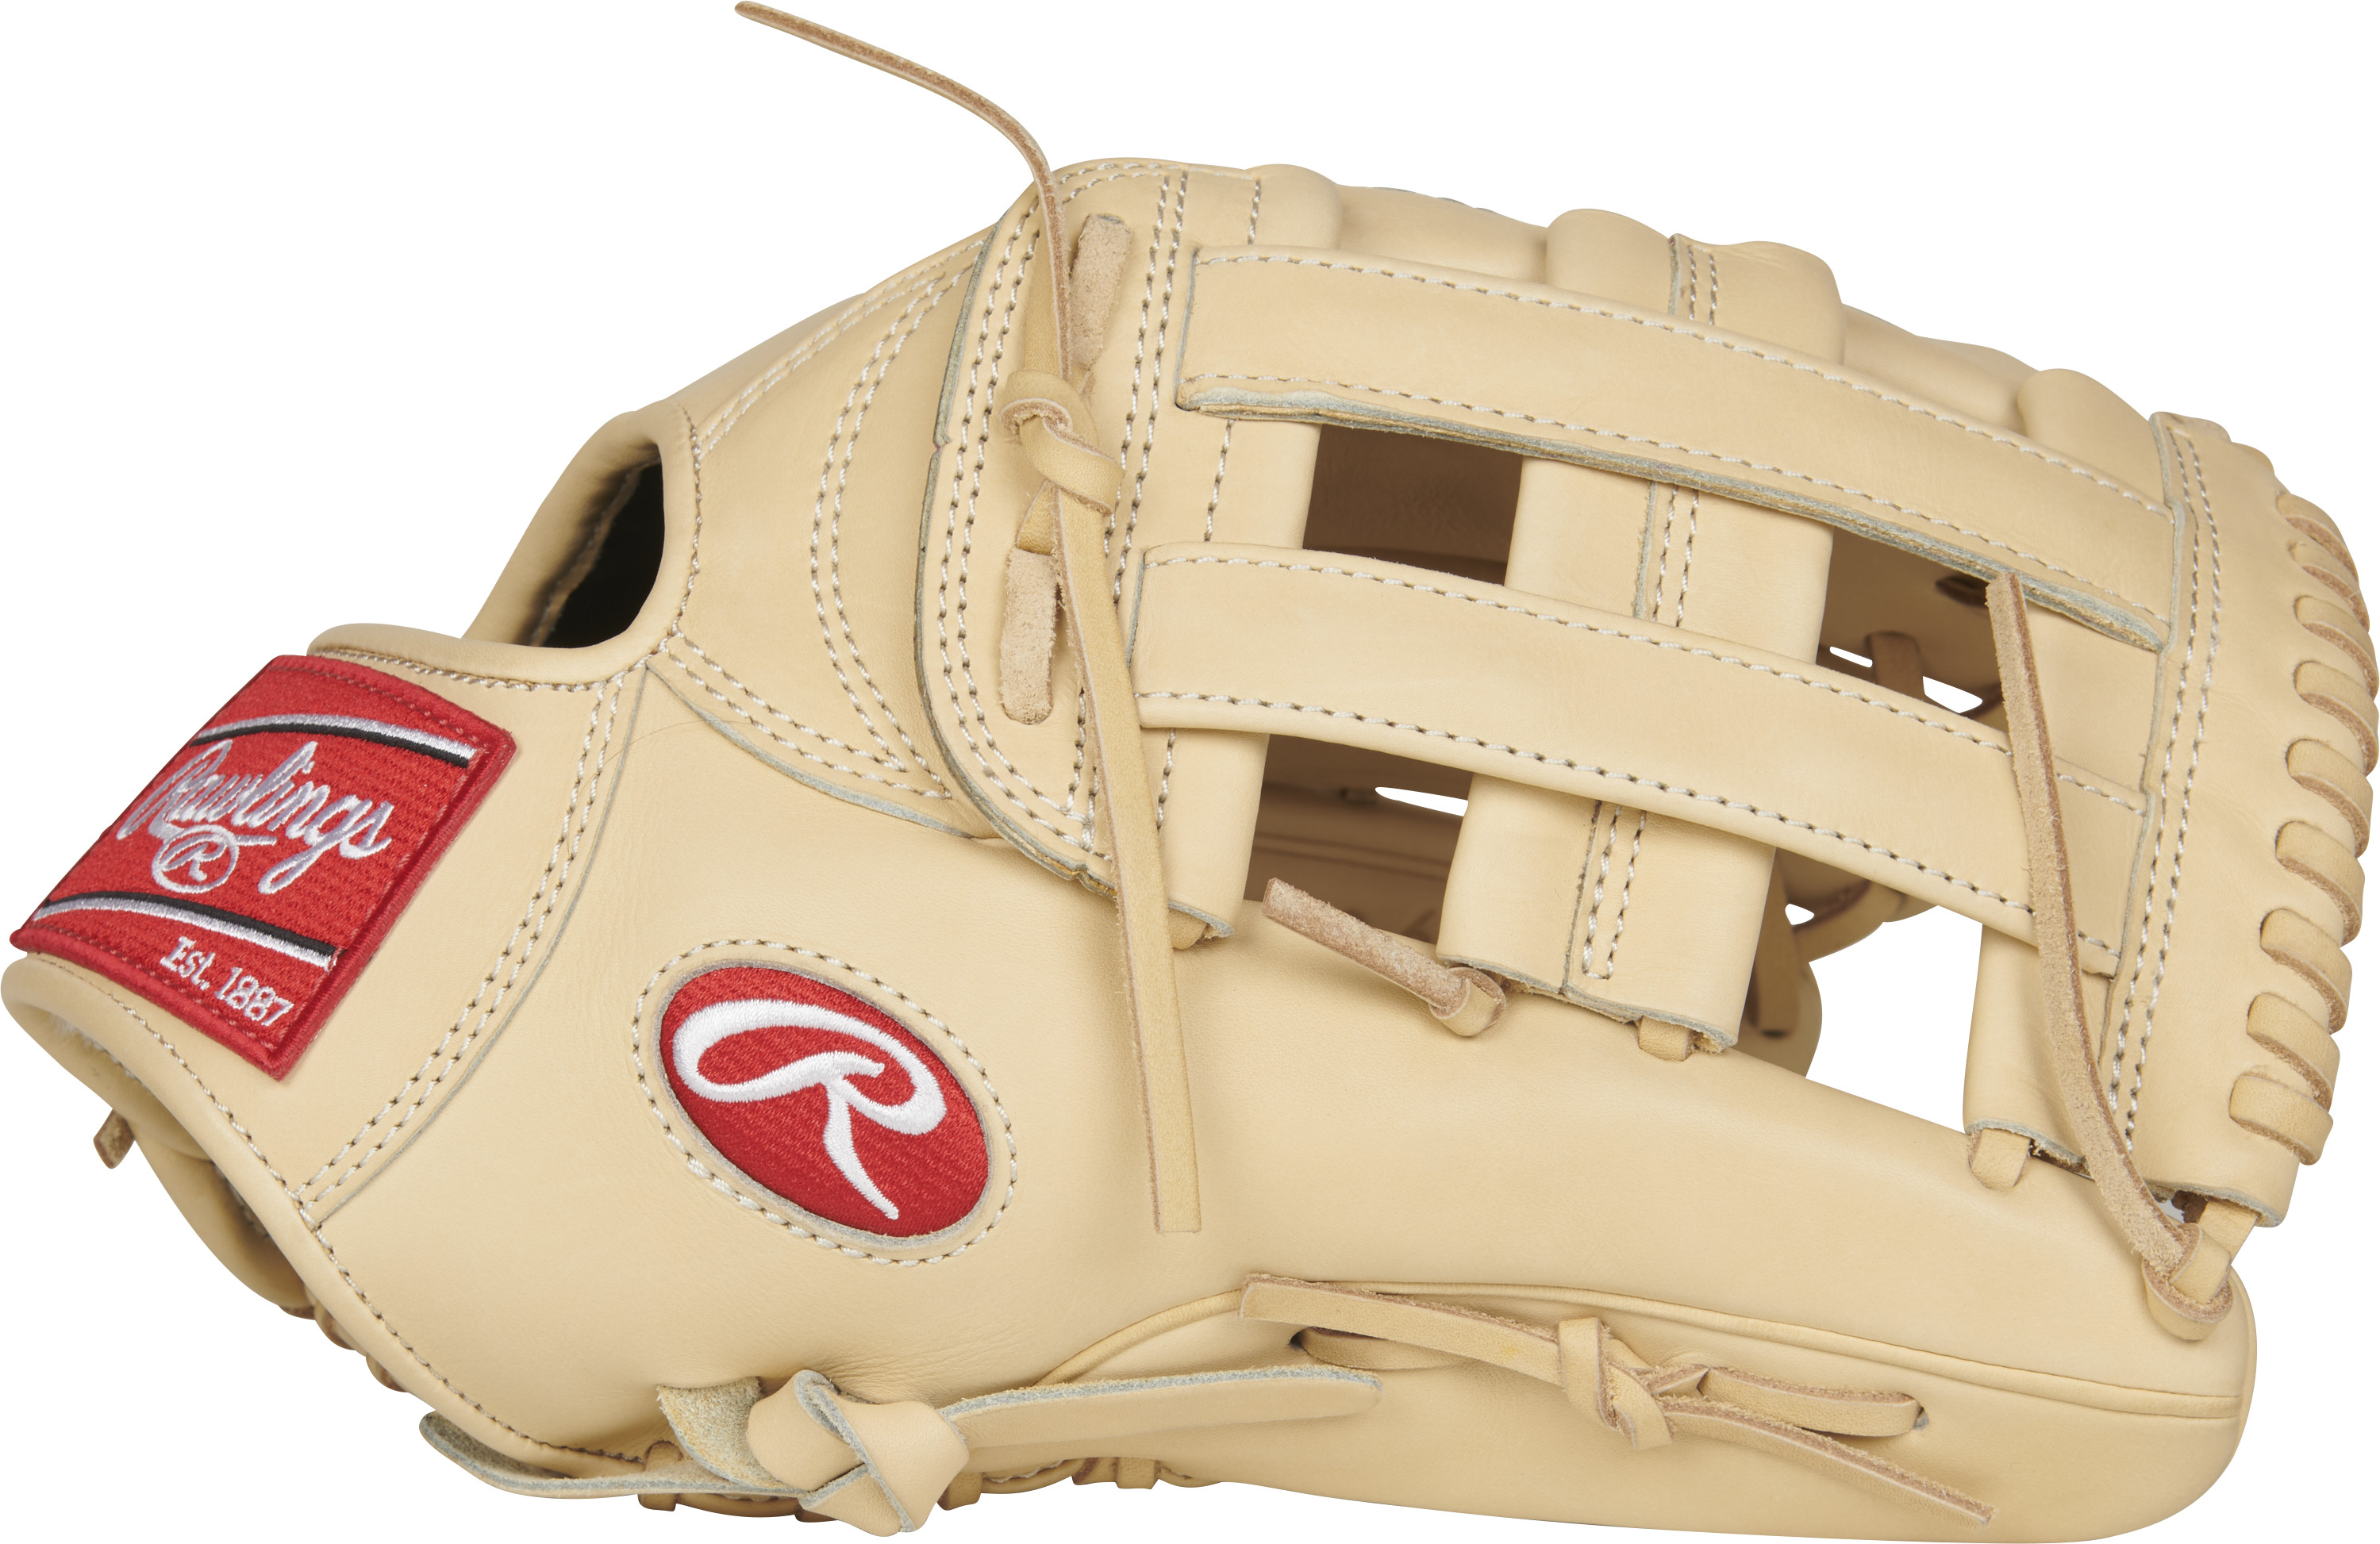 http://www.bestbatdeals.com/images/gloves/rawlings/PROS3039-6CC-3.jpg